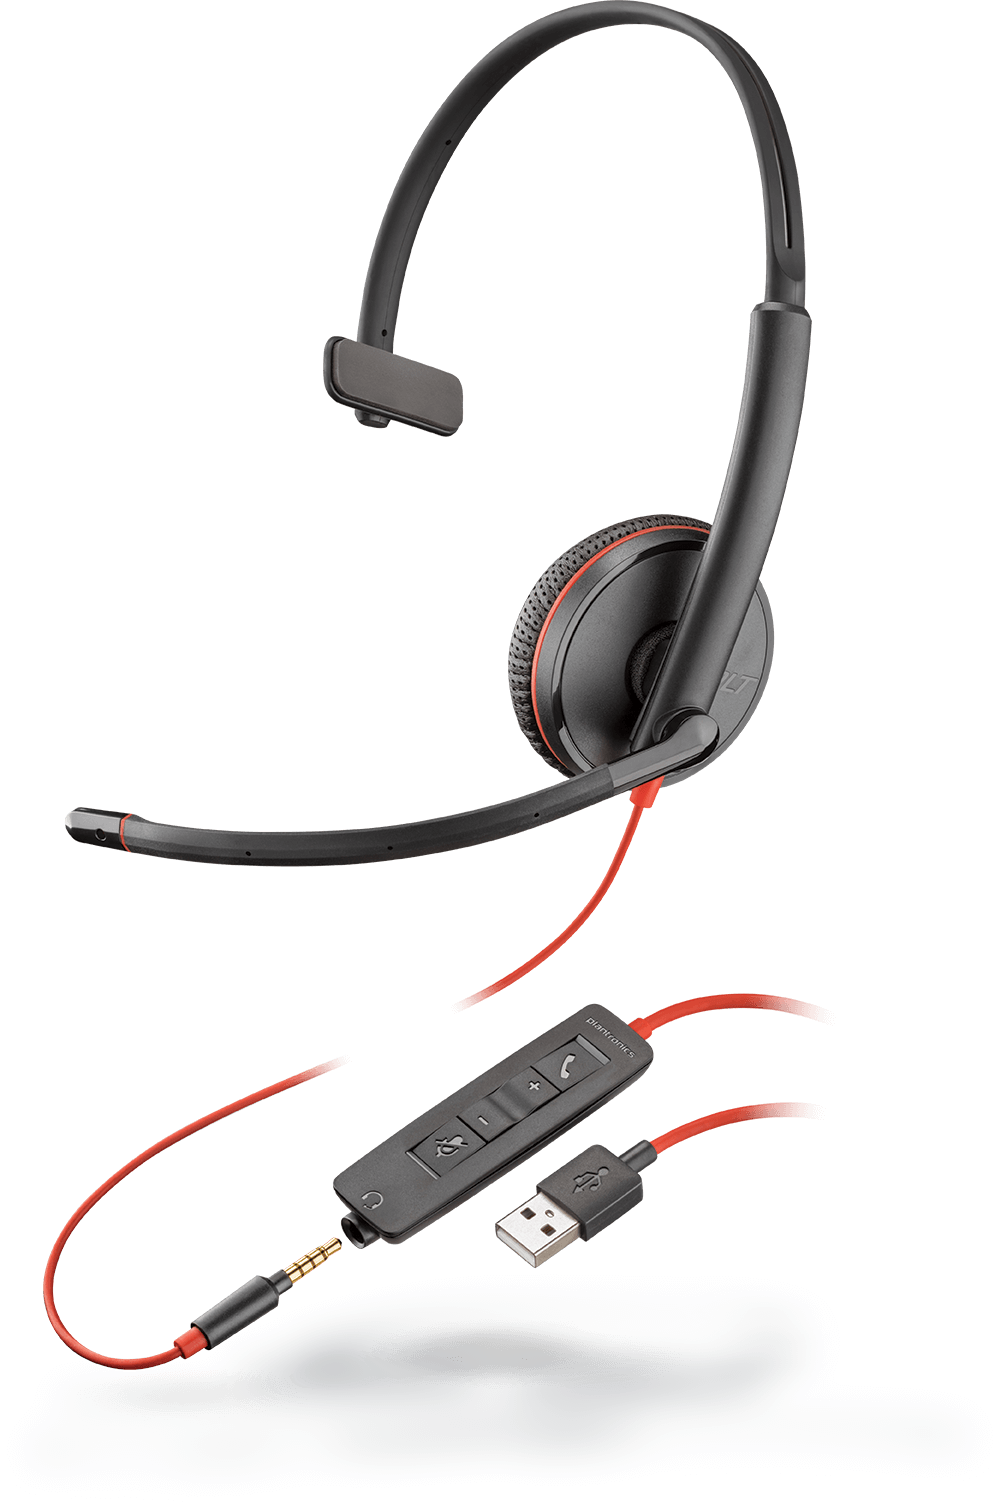 Plantronics Products Headsets Headphones And Accessories Phone Jack Wiring Diagram In Addition Telephone Color